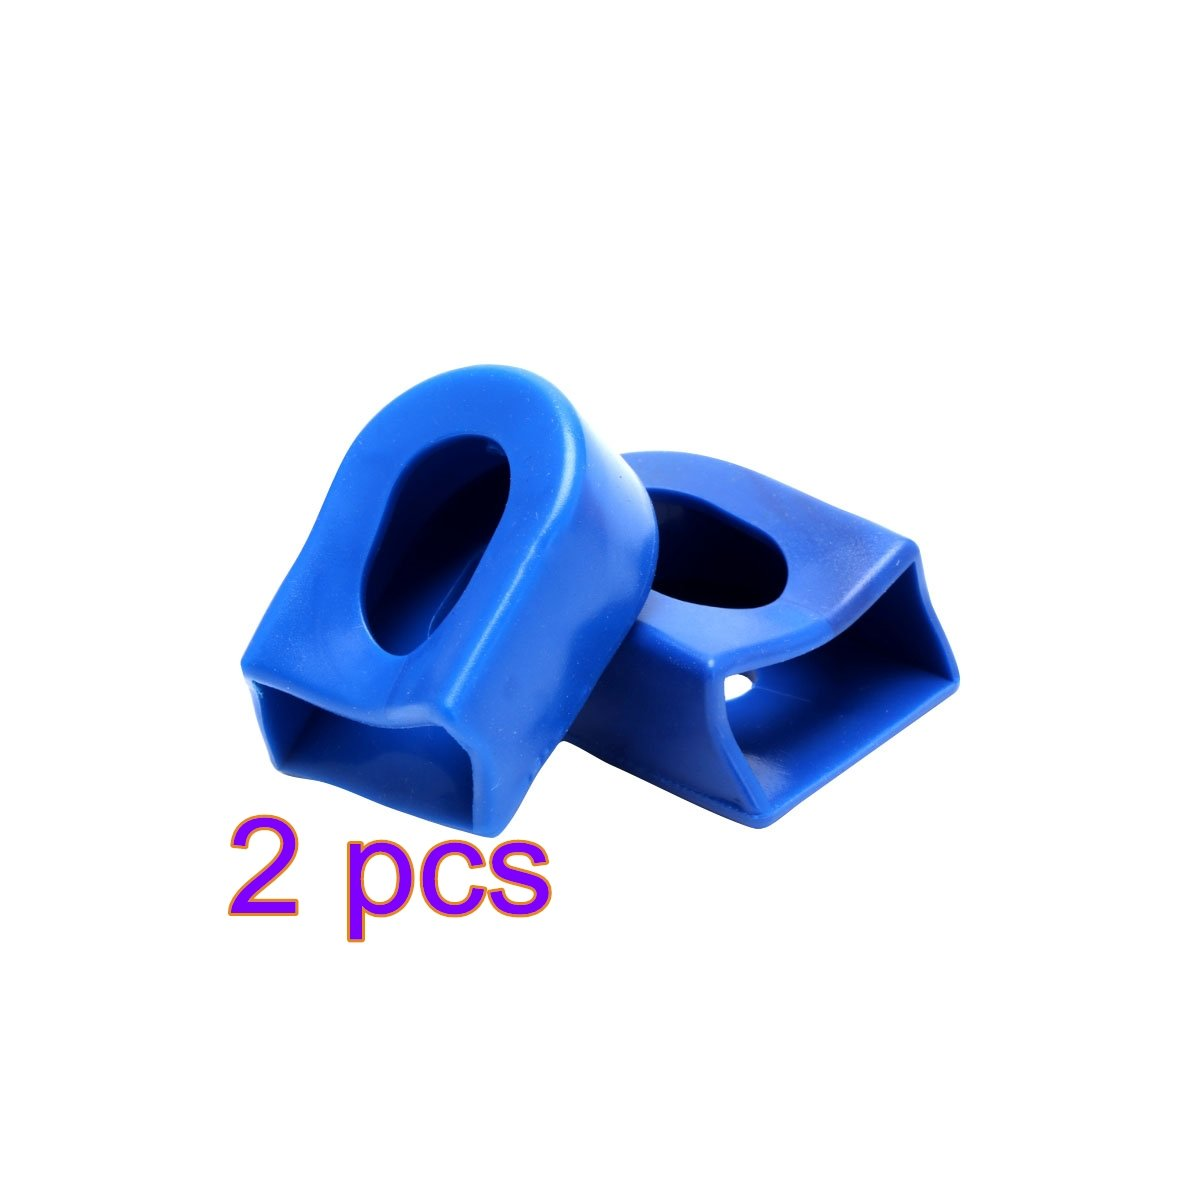 ADSRO 2pcs Bicycle Sleeve Cover Silicone Crank Protective Sets Bike MTB Crank Arm Boots Protector